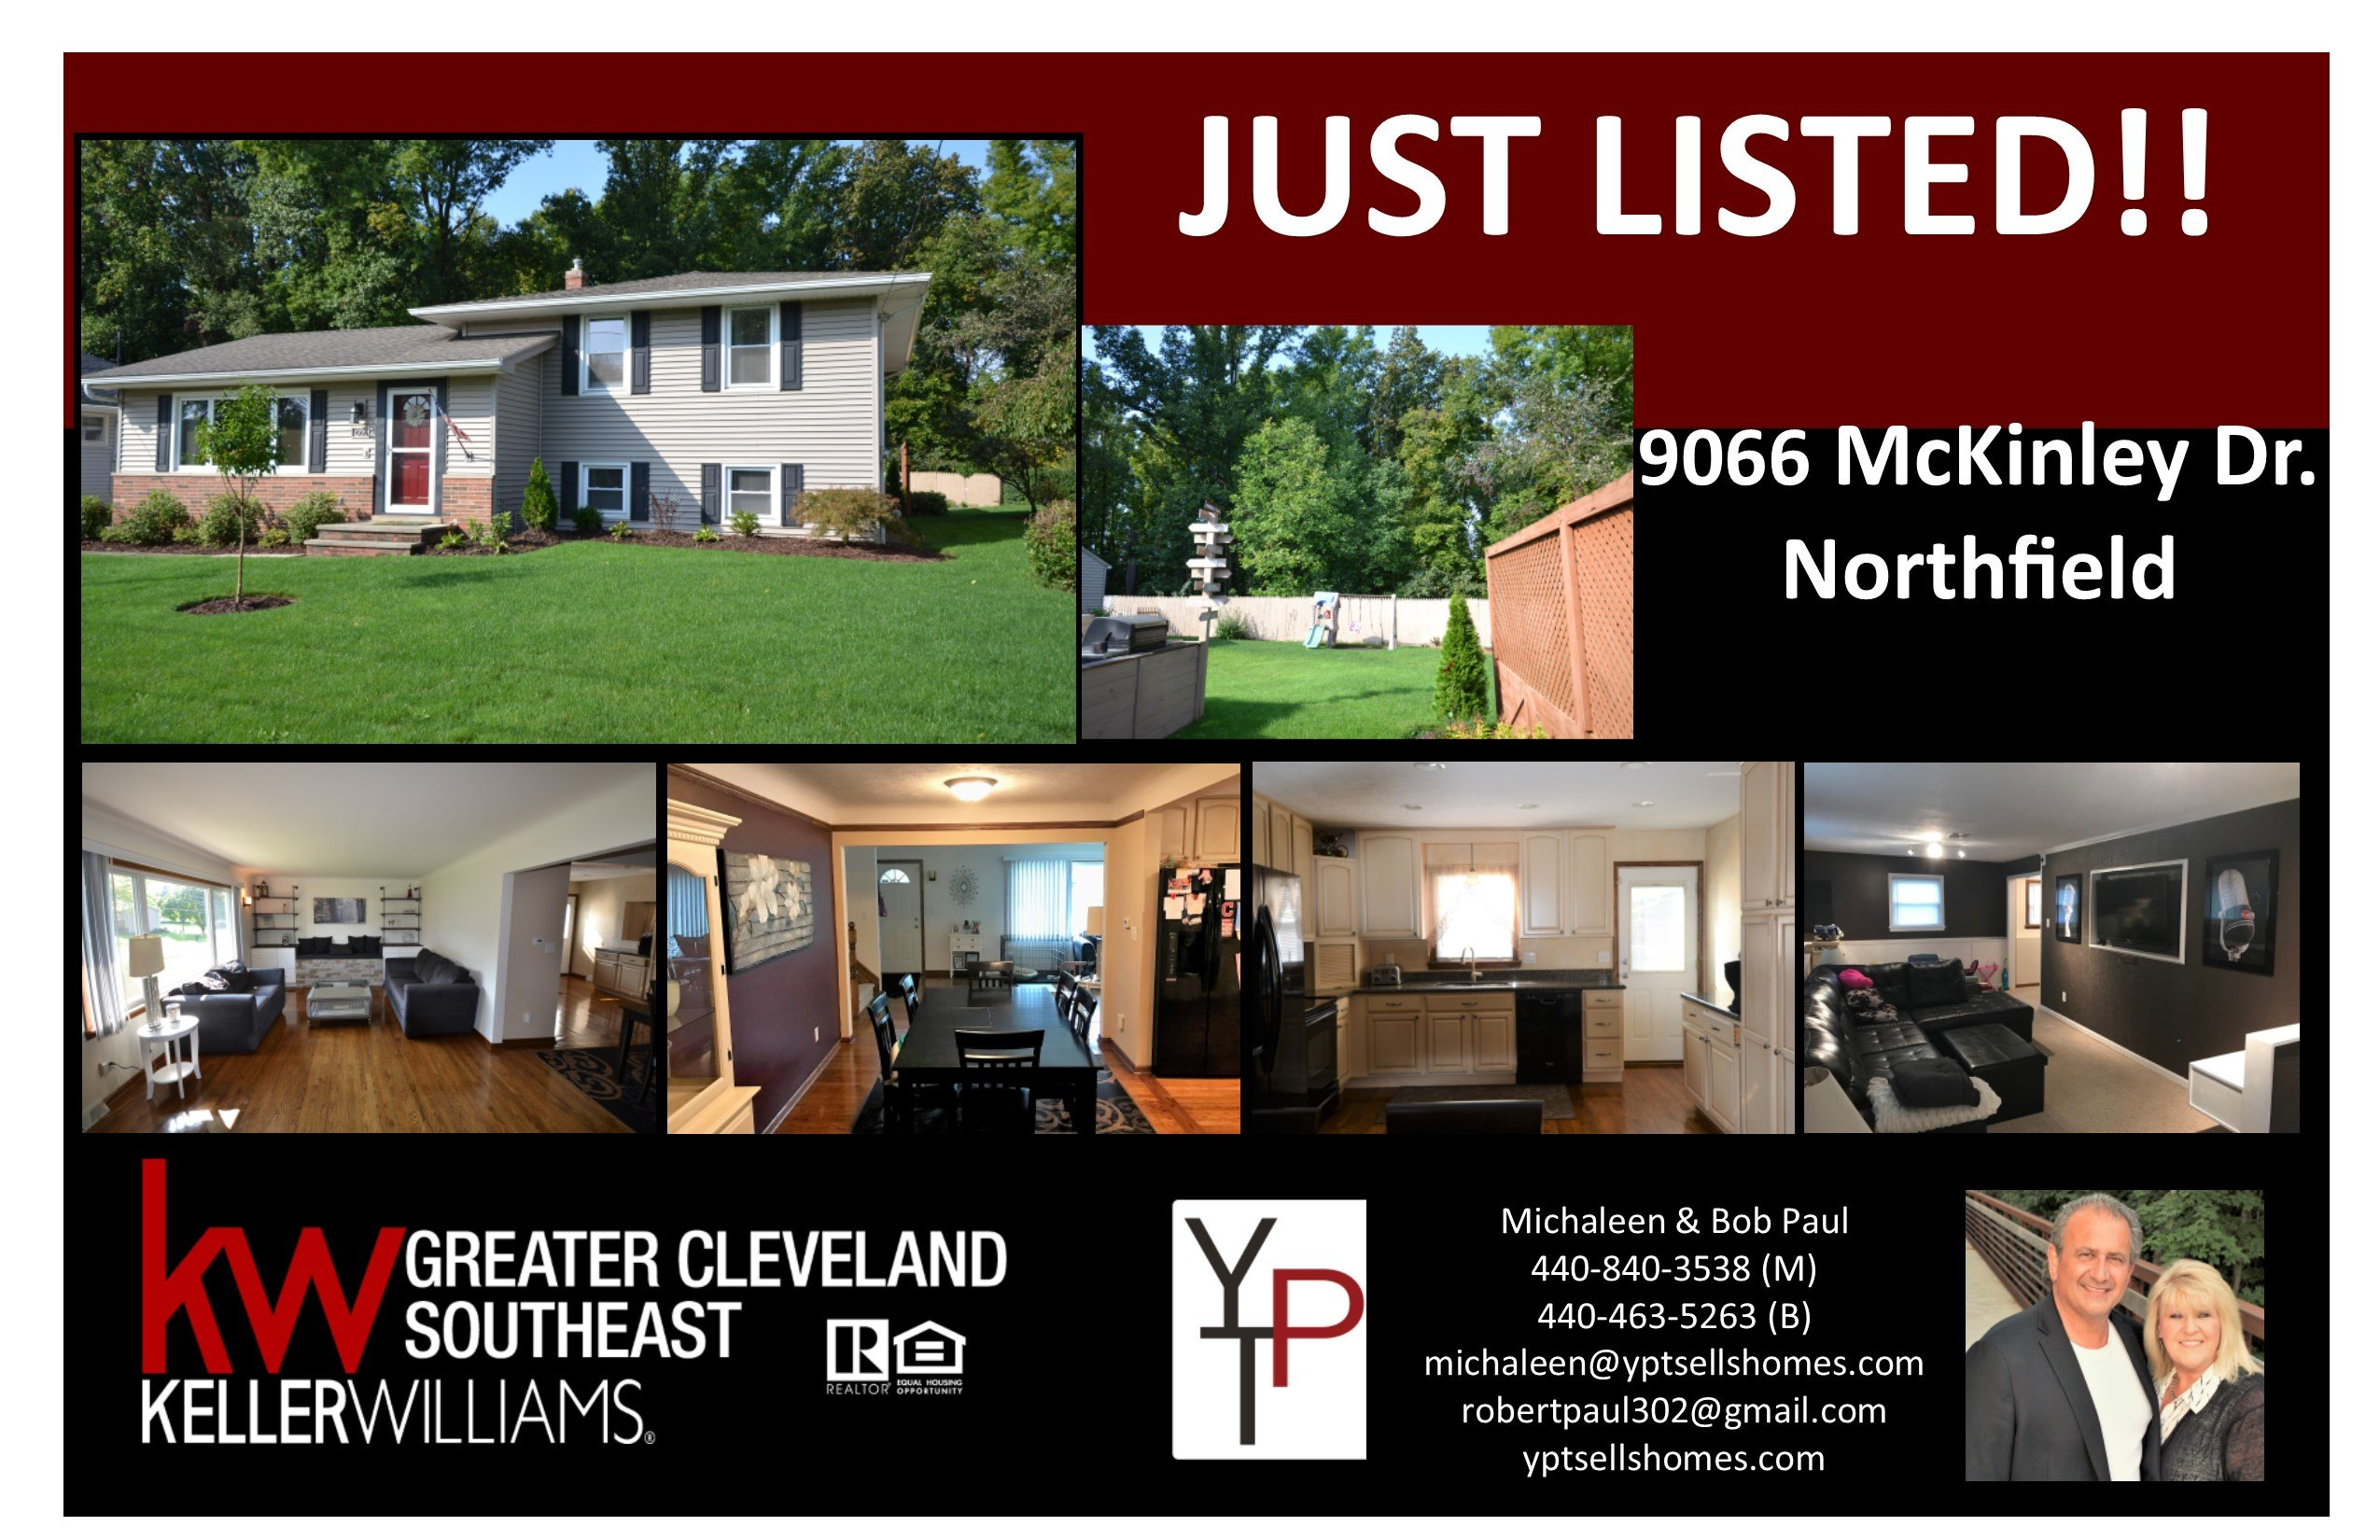 Just Listed!! 9066 McKinley Drive – Northfield